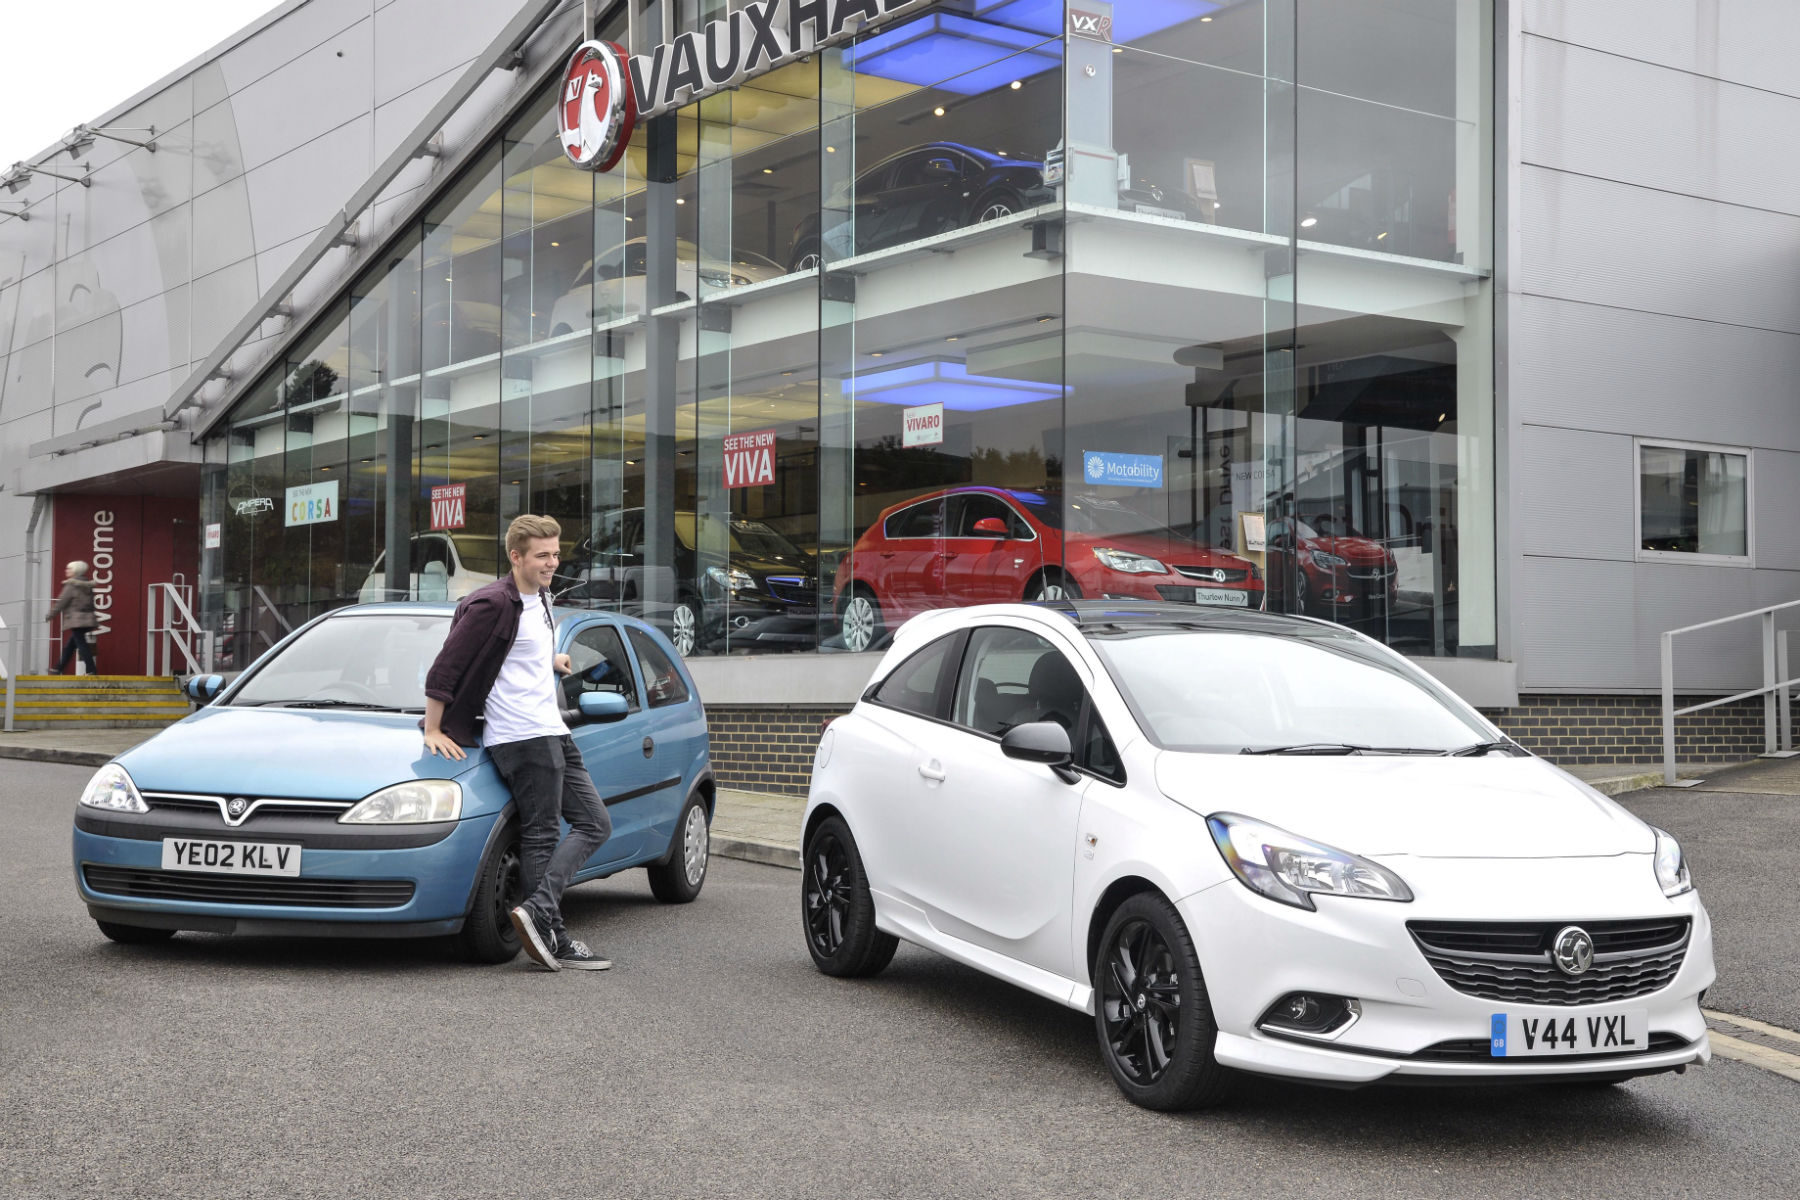 Vauxhall will give you £1,000 more than WeBuyAnyCar for your part-exchange